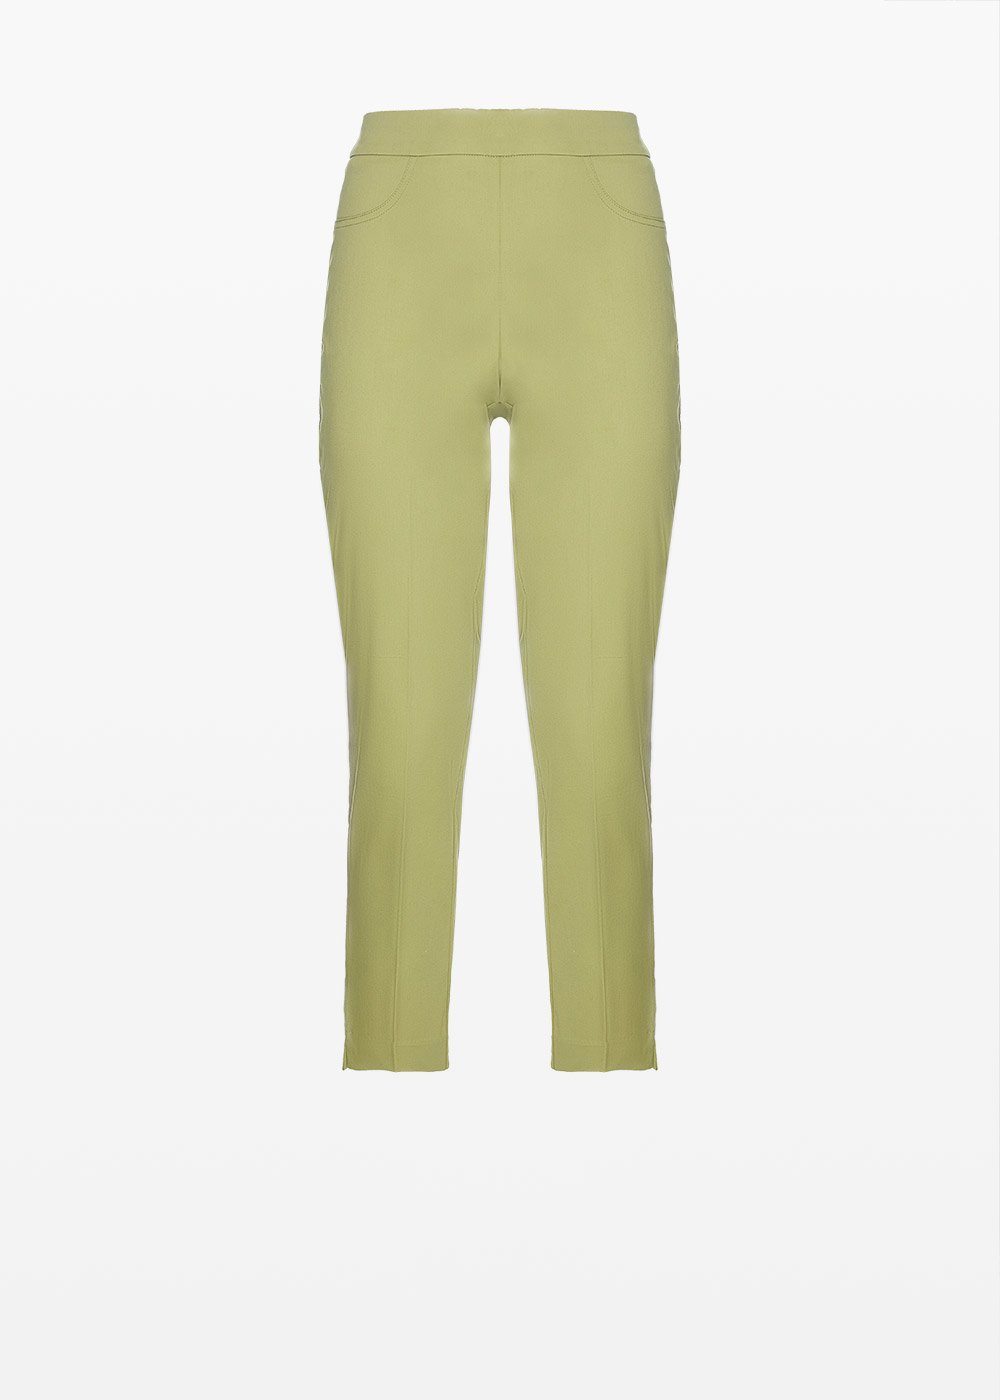 Capri Pants 'Piero6' Scarlett design in cotton sateen - Alga - Woman - Category image